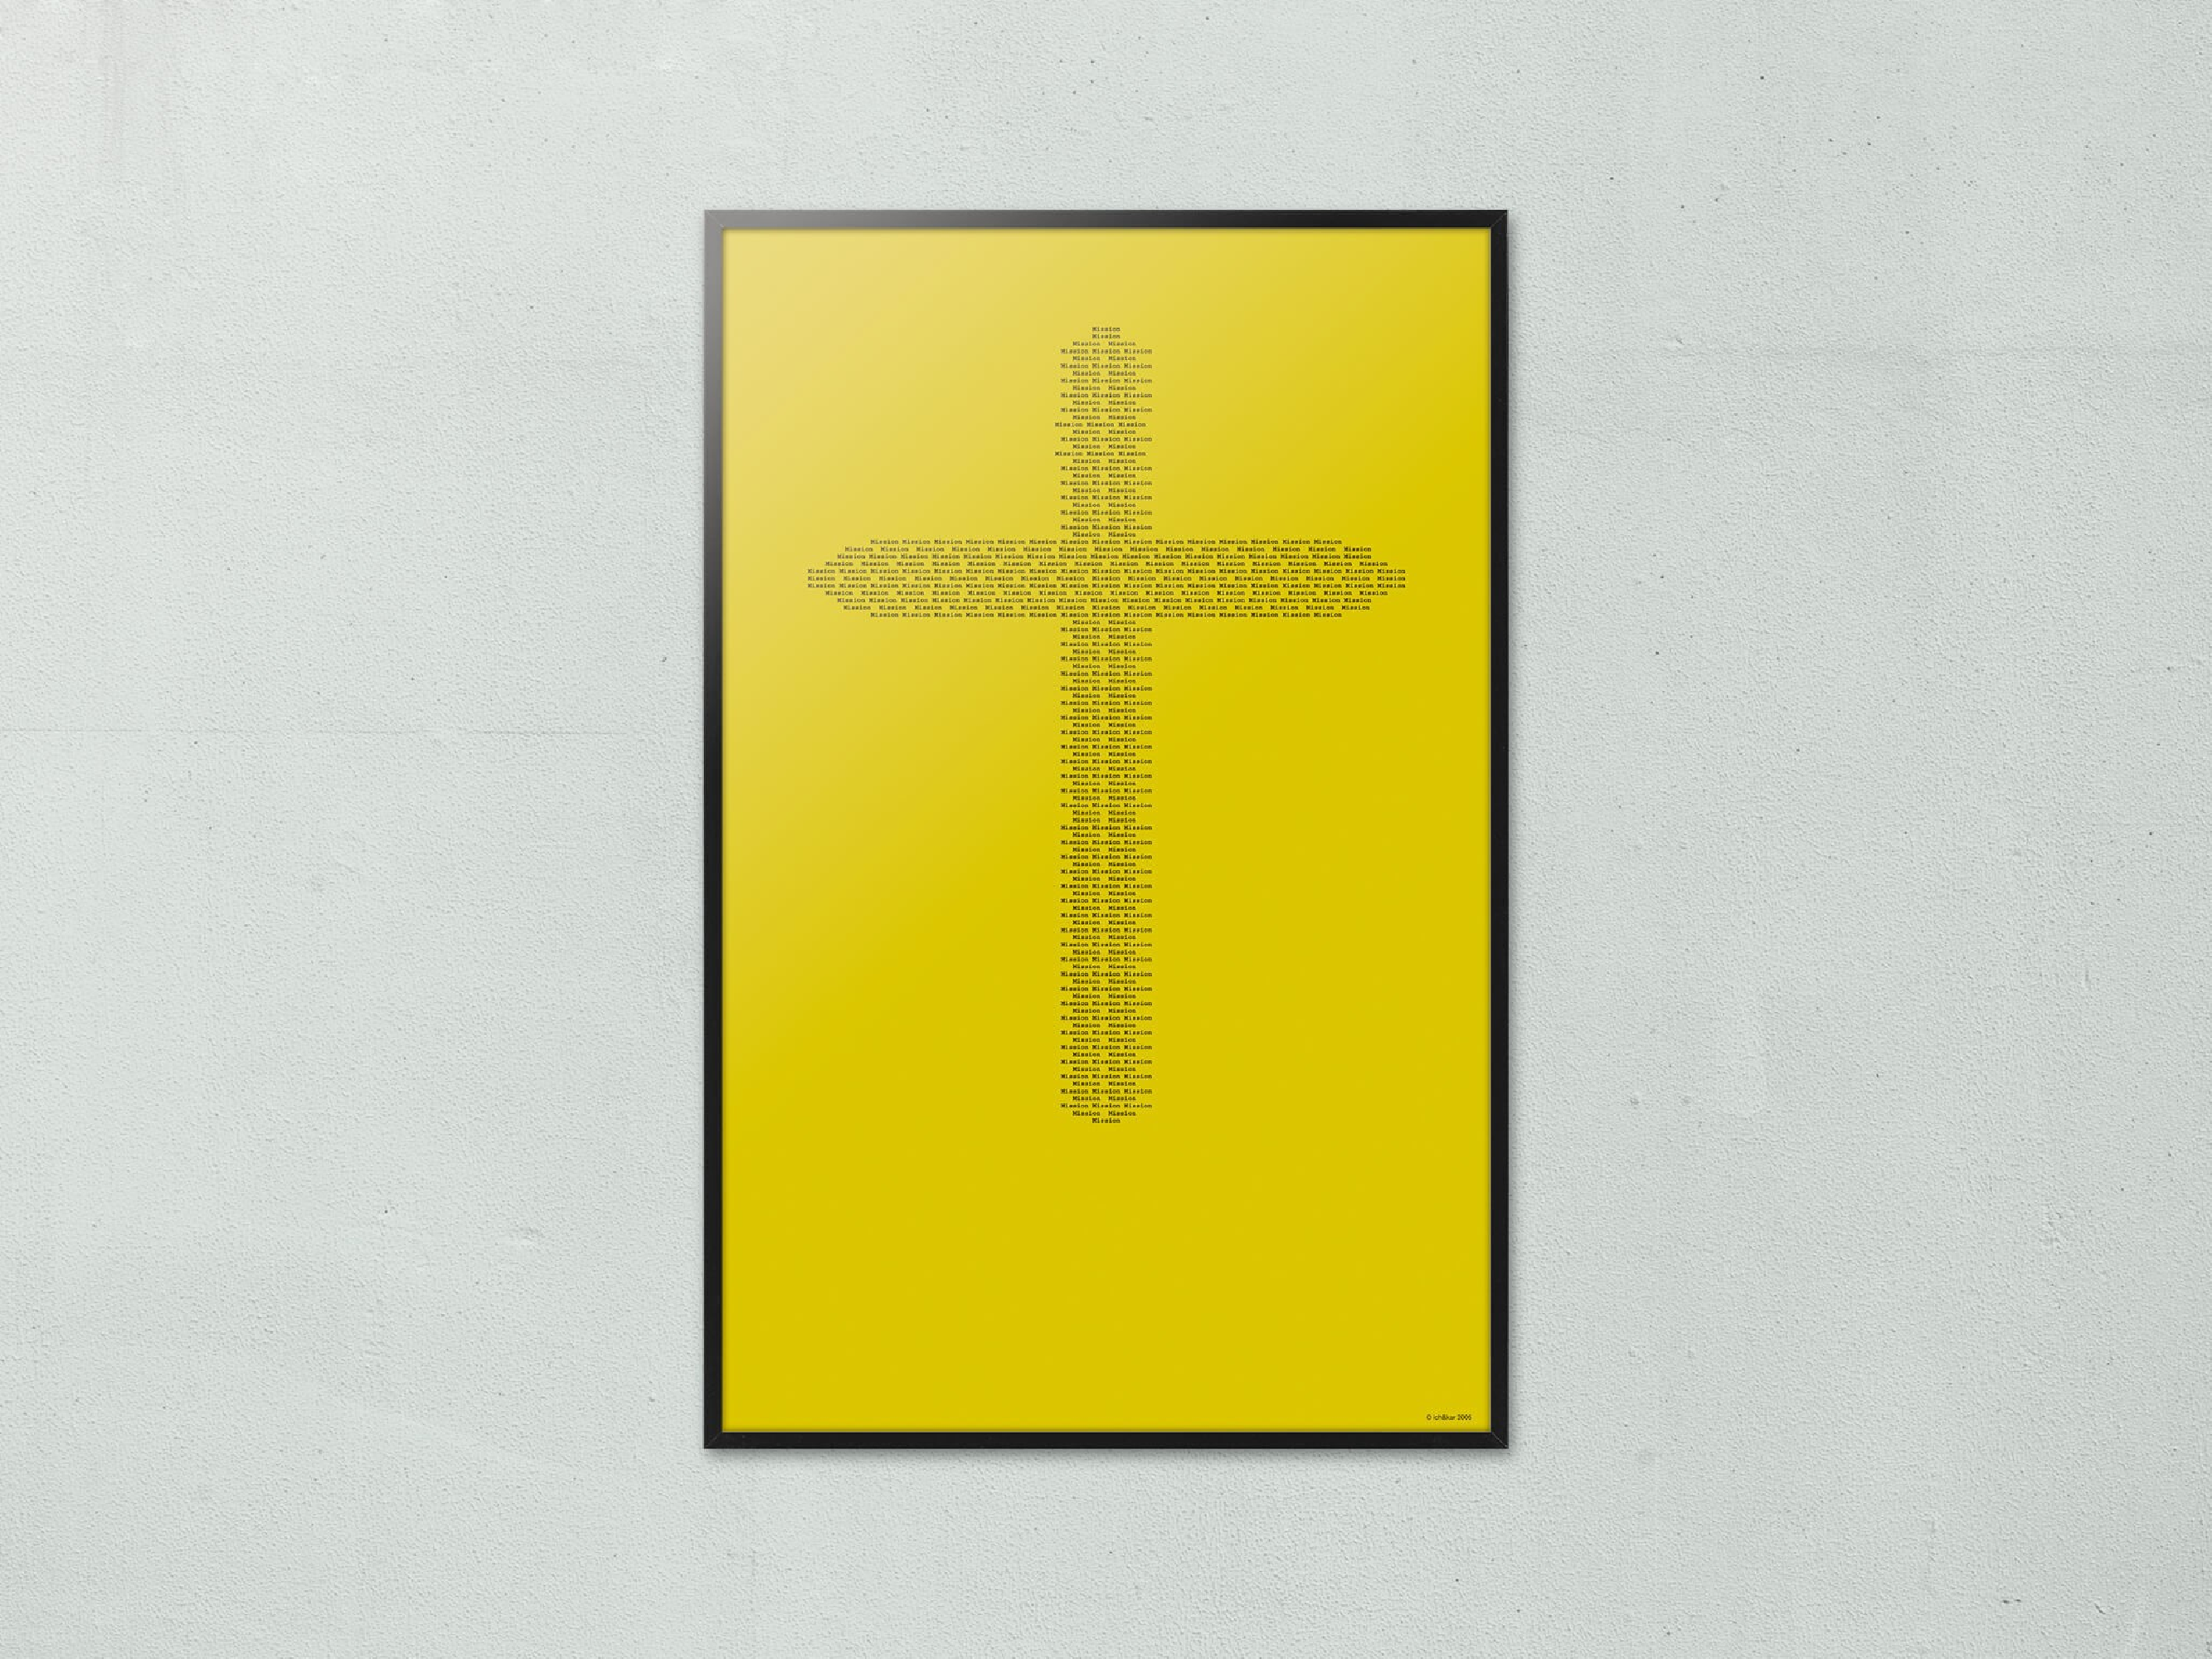 Affiche Cross, de petit mots Mission forme ensemble une grande croix, Mission to mars, design ichetkar